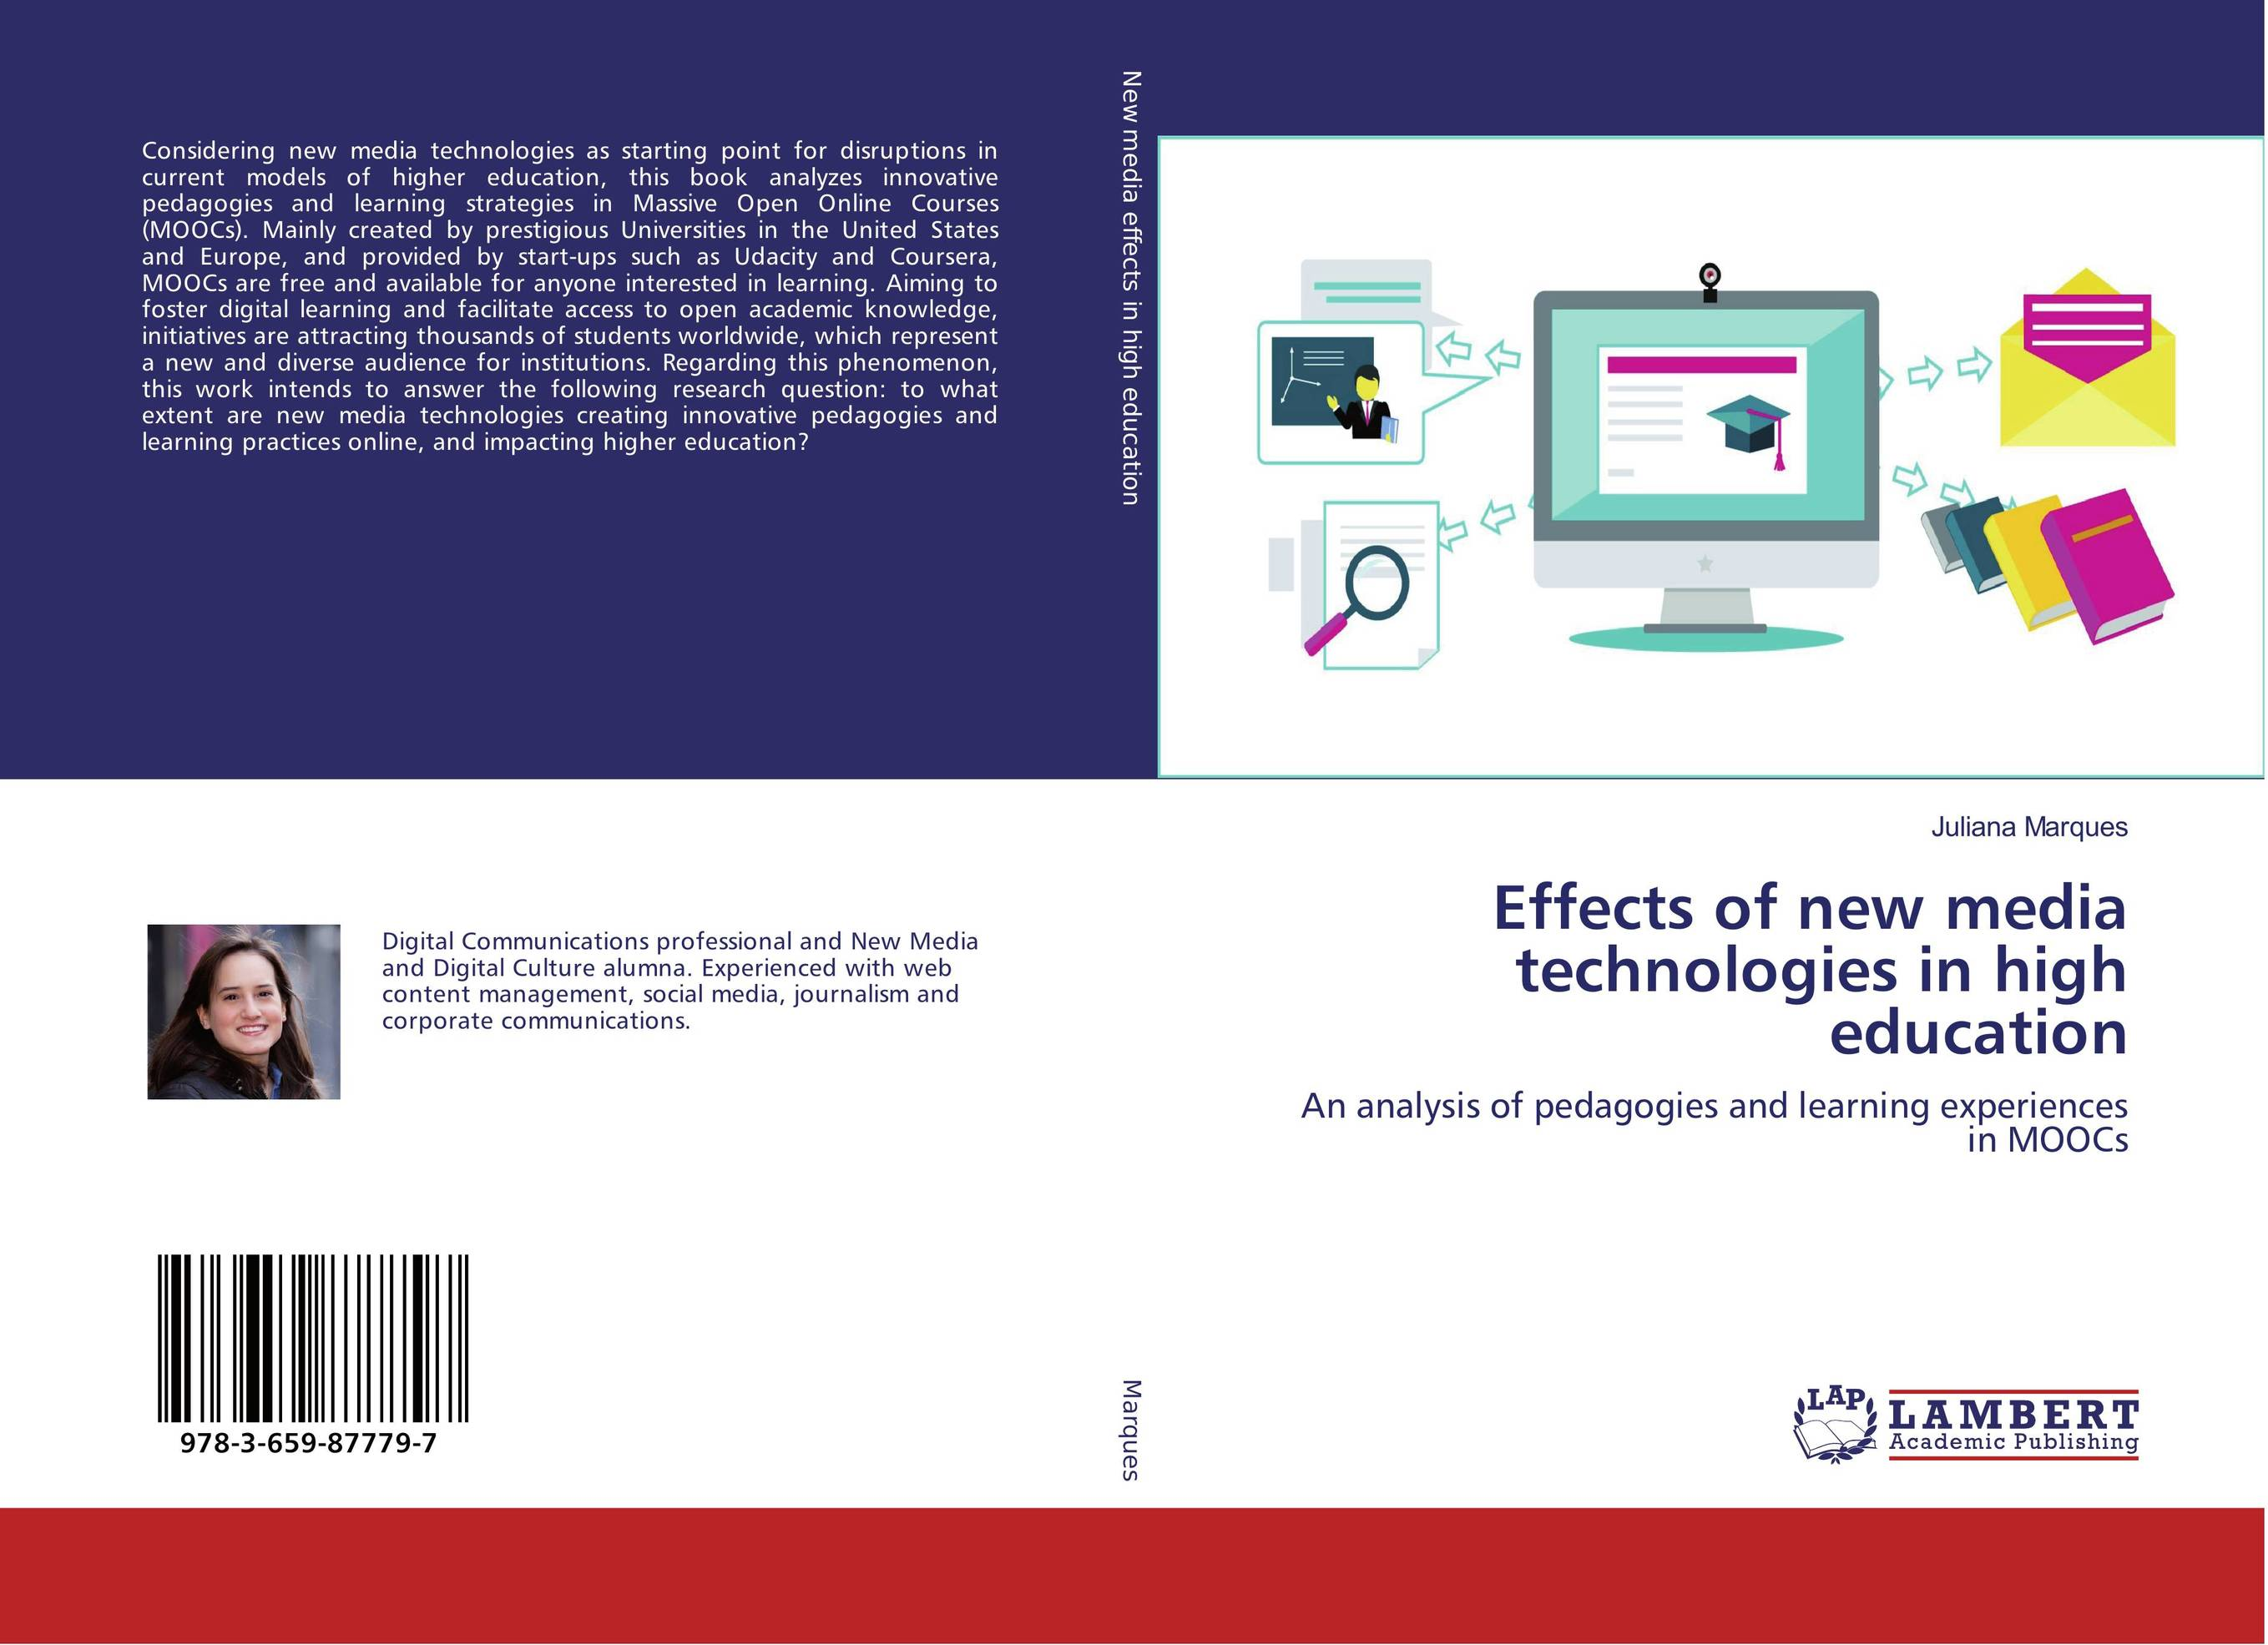 Effects of new media technologies in high education